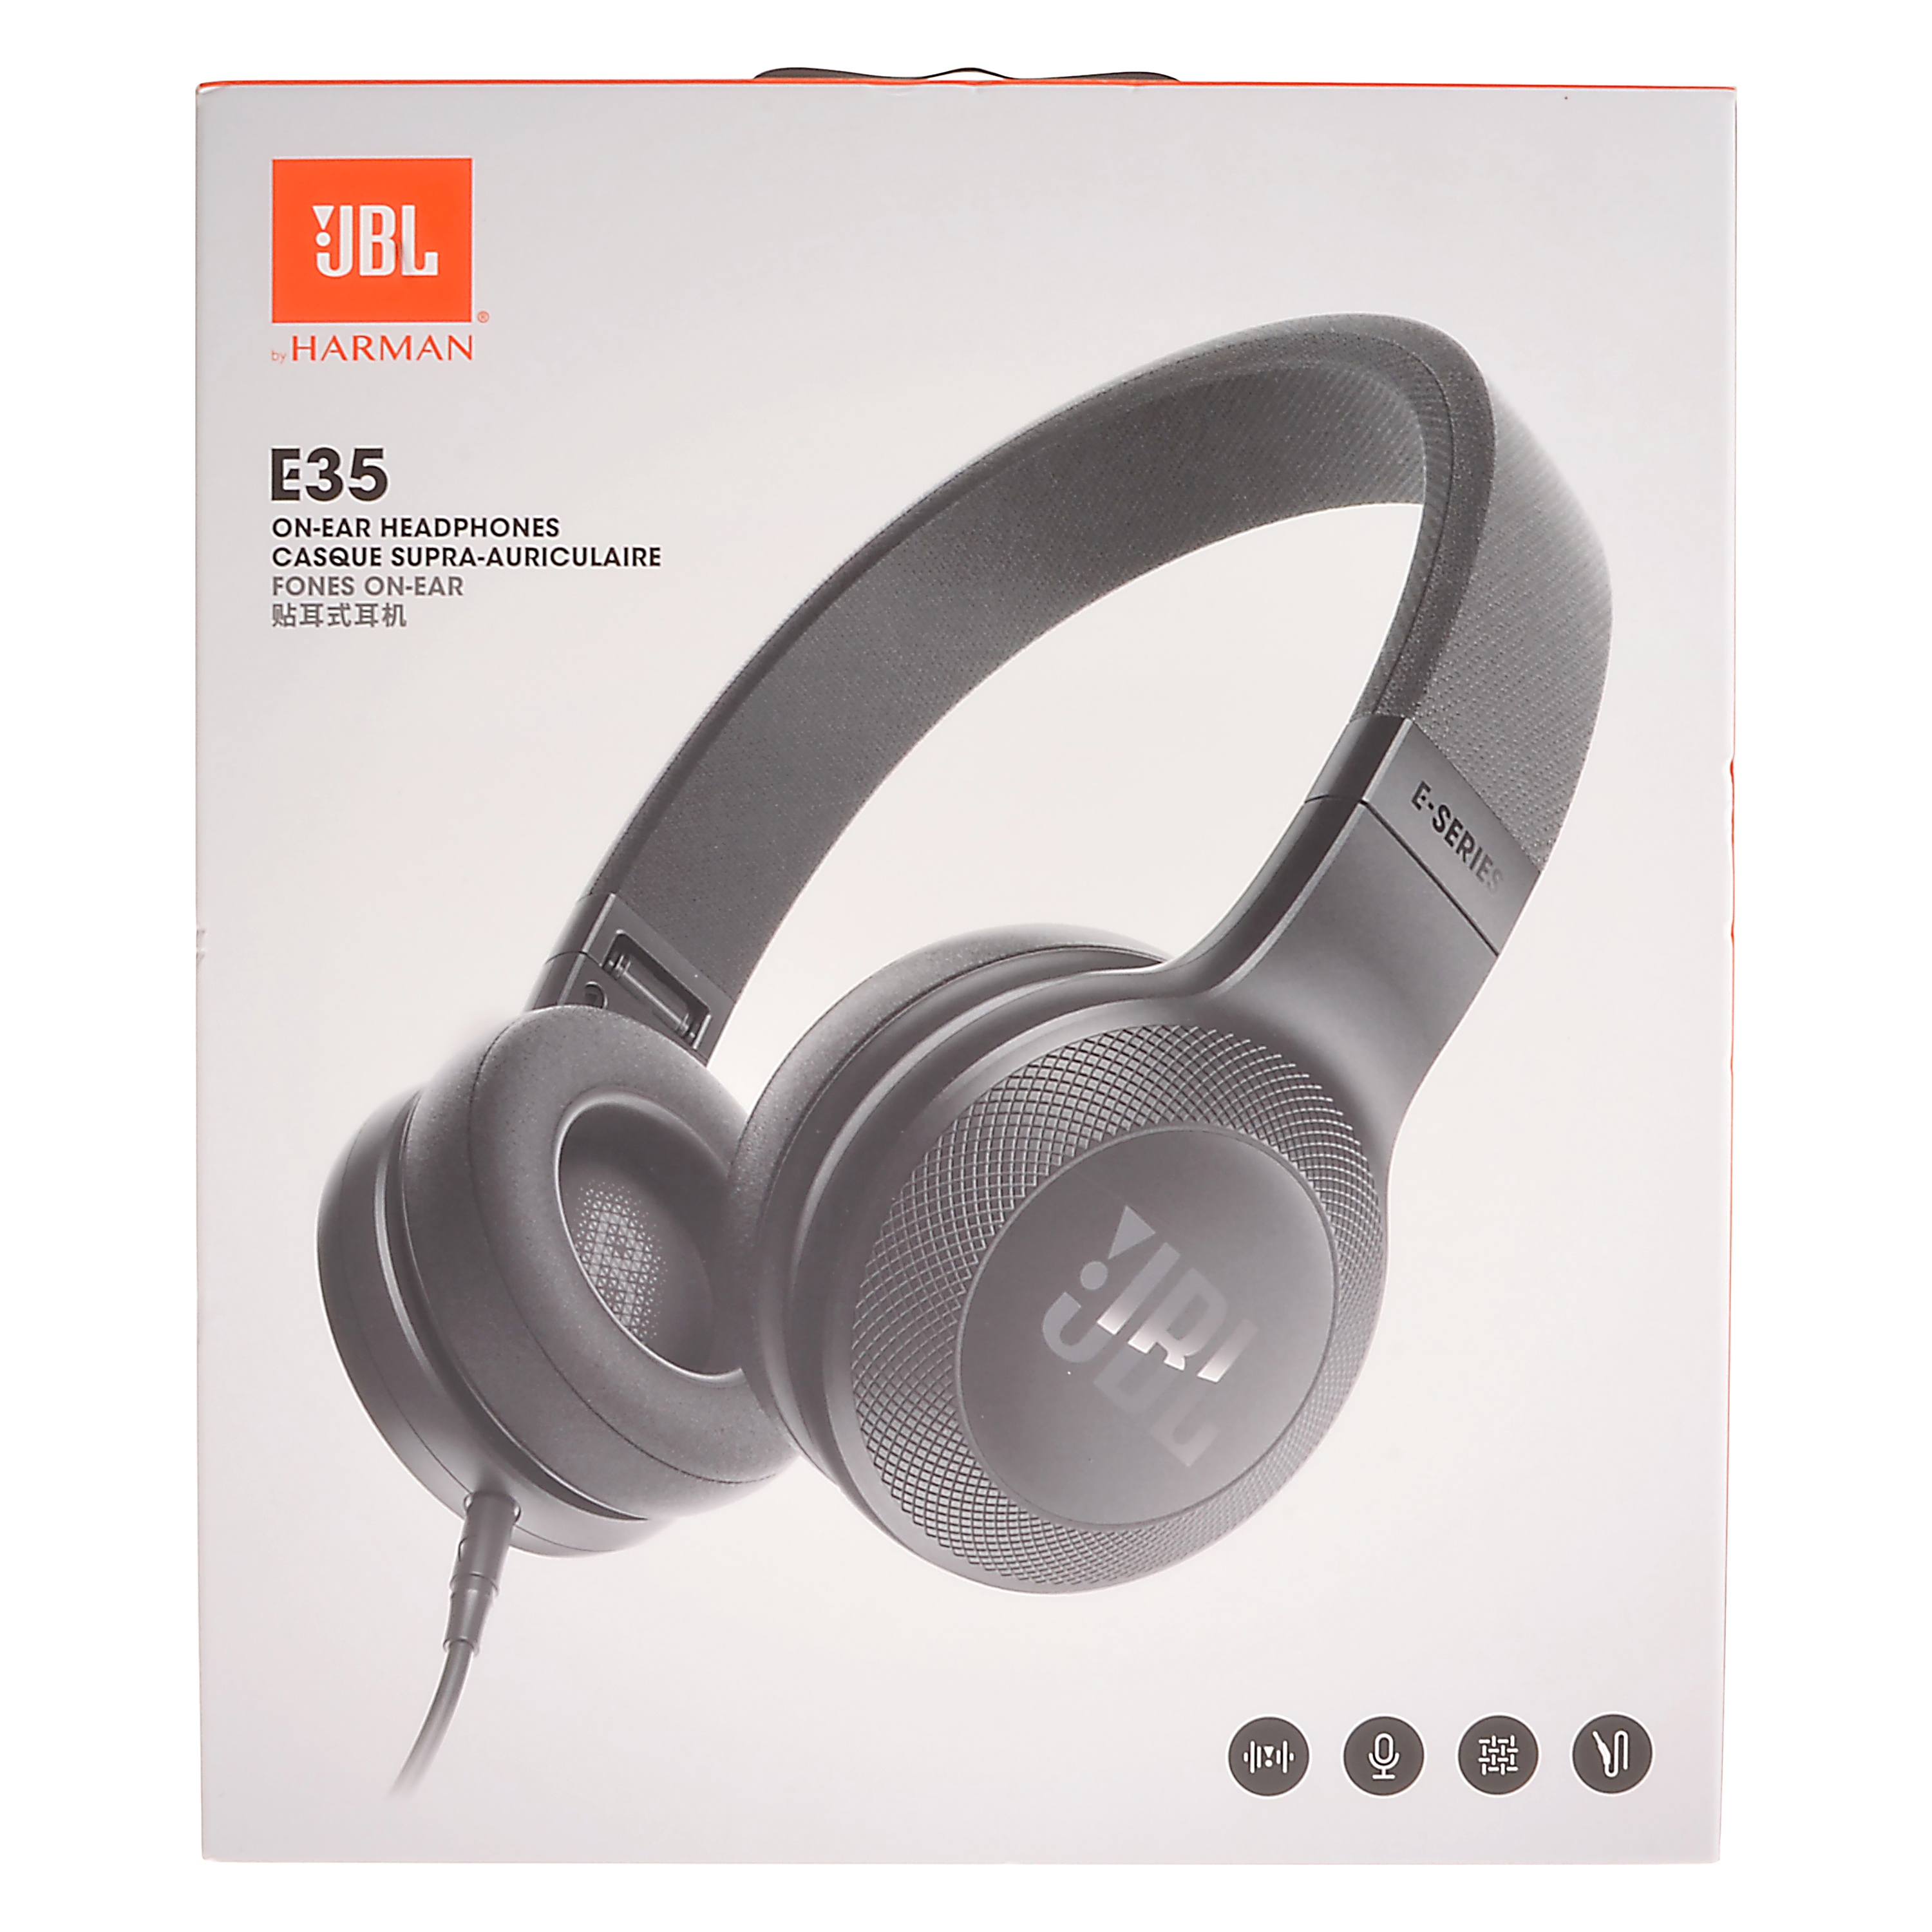 JBL E35 On-Ear Headphones, Black